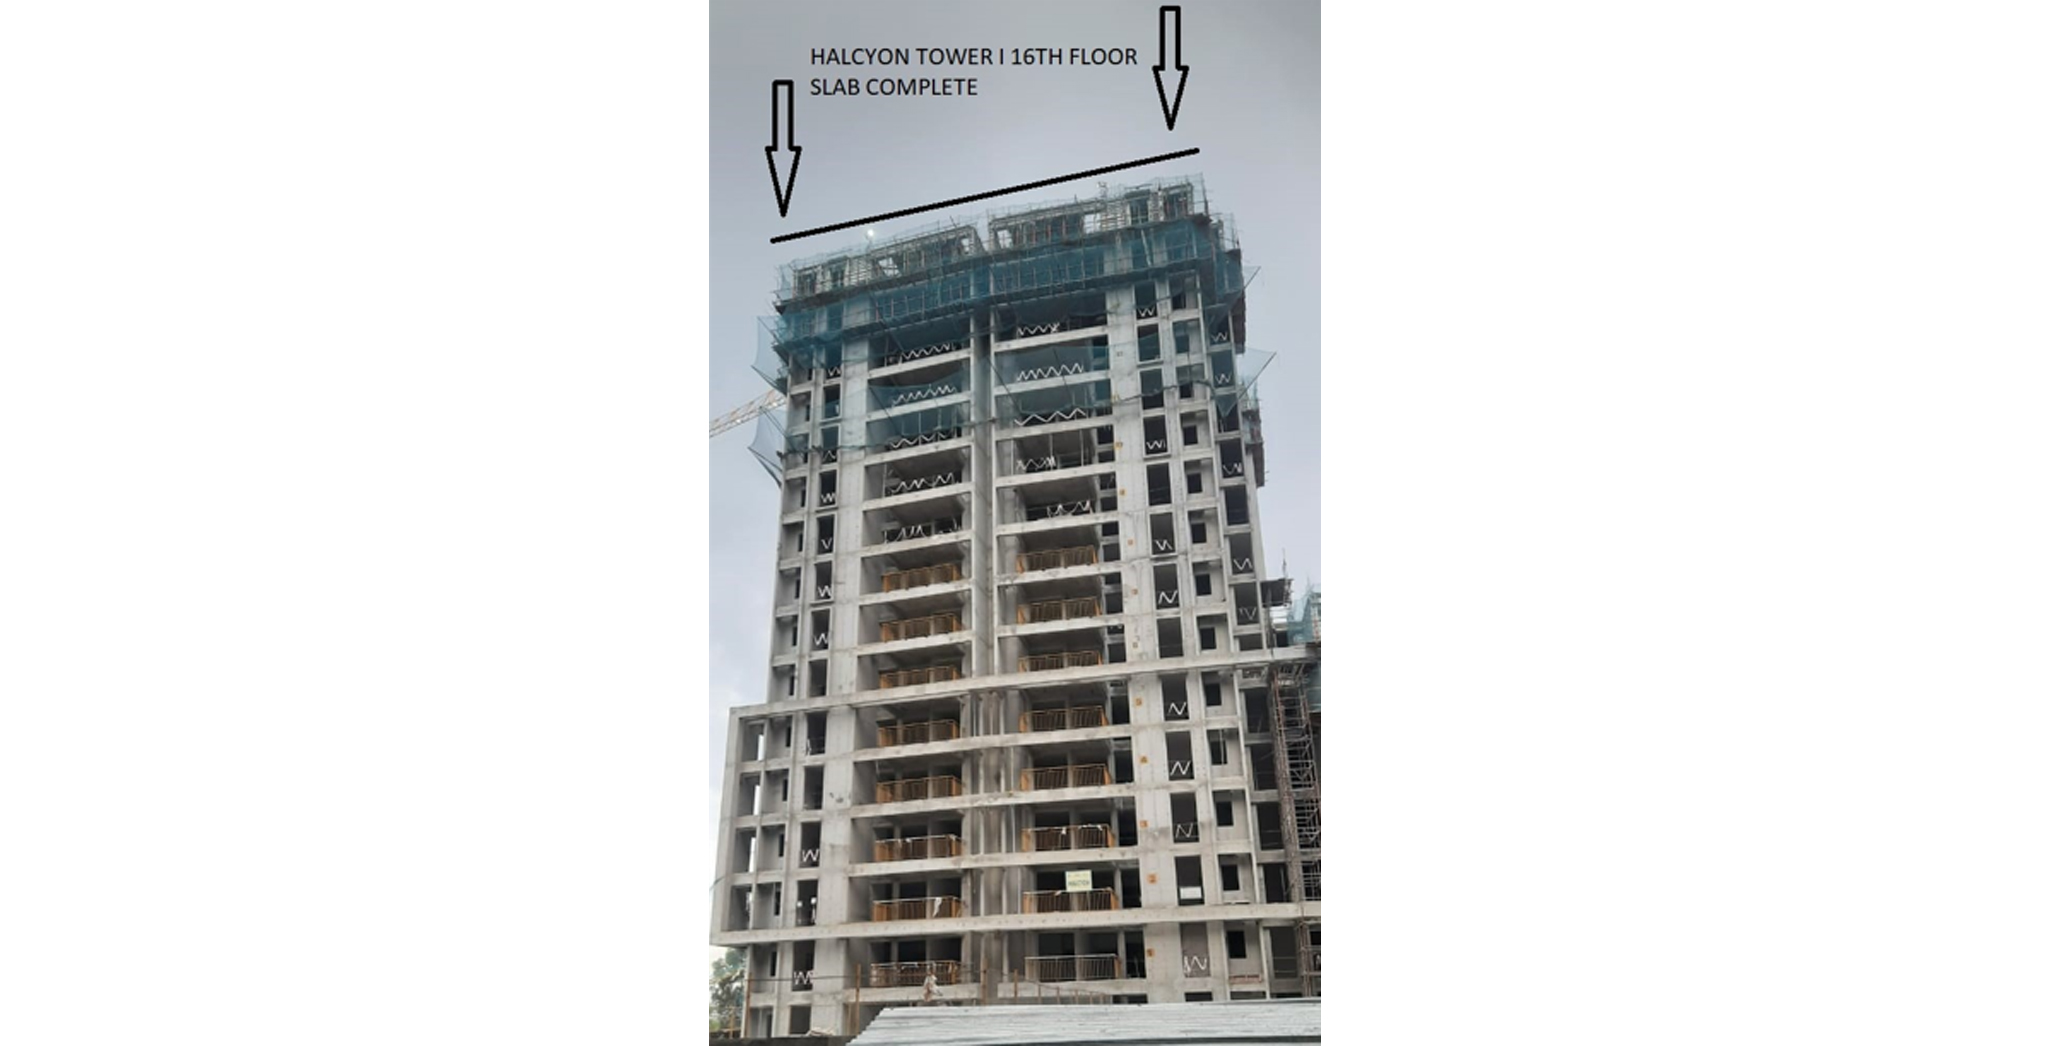 Sep 2021 - Halcyon Tower I: Casting of 16th floor Slab